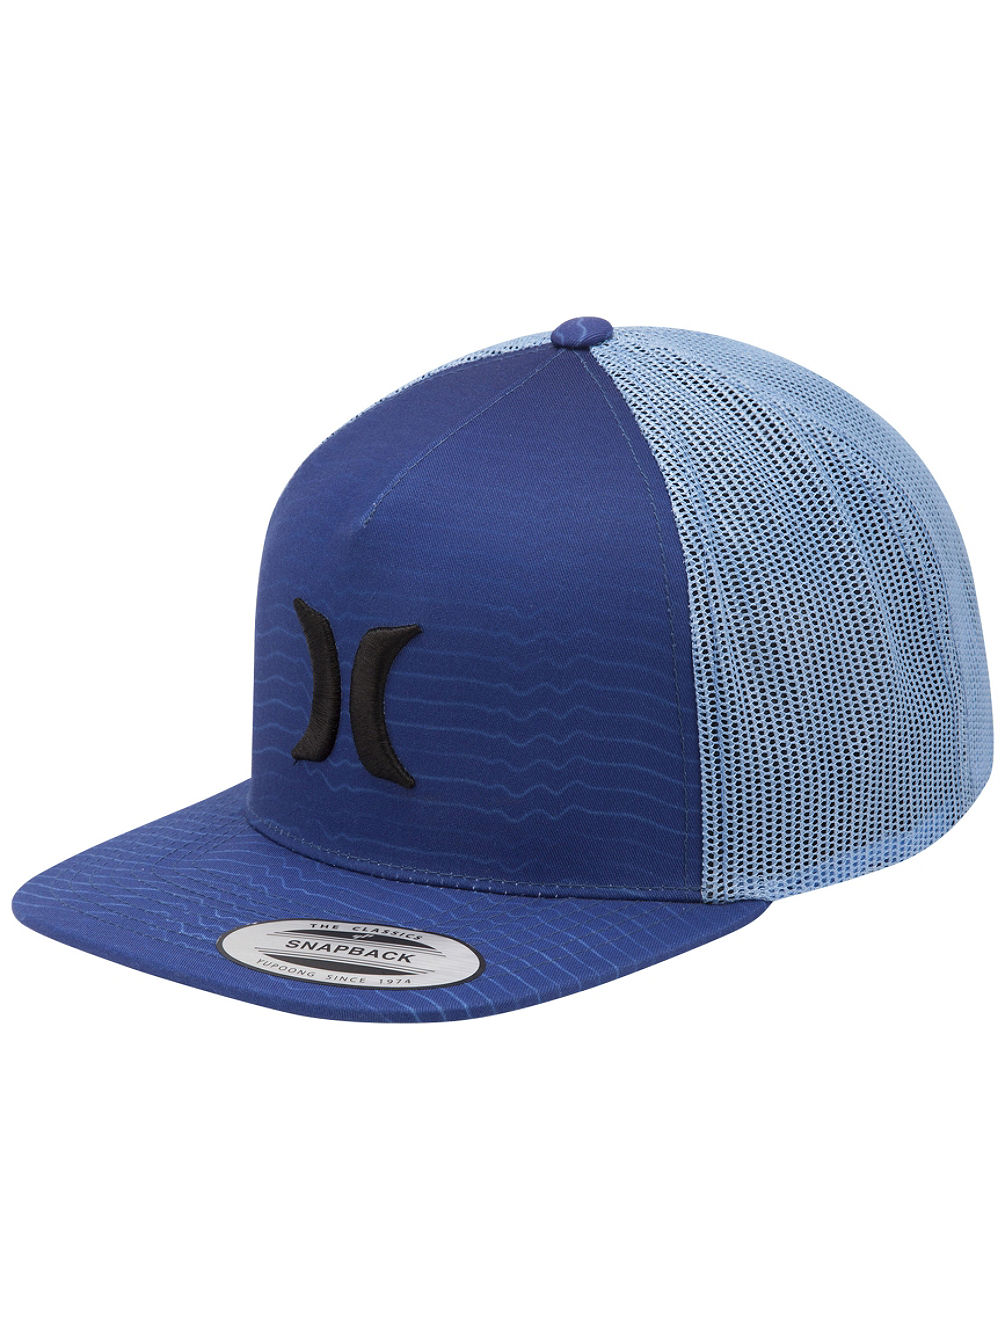 Buy Hurley Block Party Speed Trucker Cap online at blue-tomato.com 80d8a2437fba